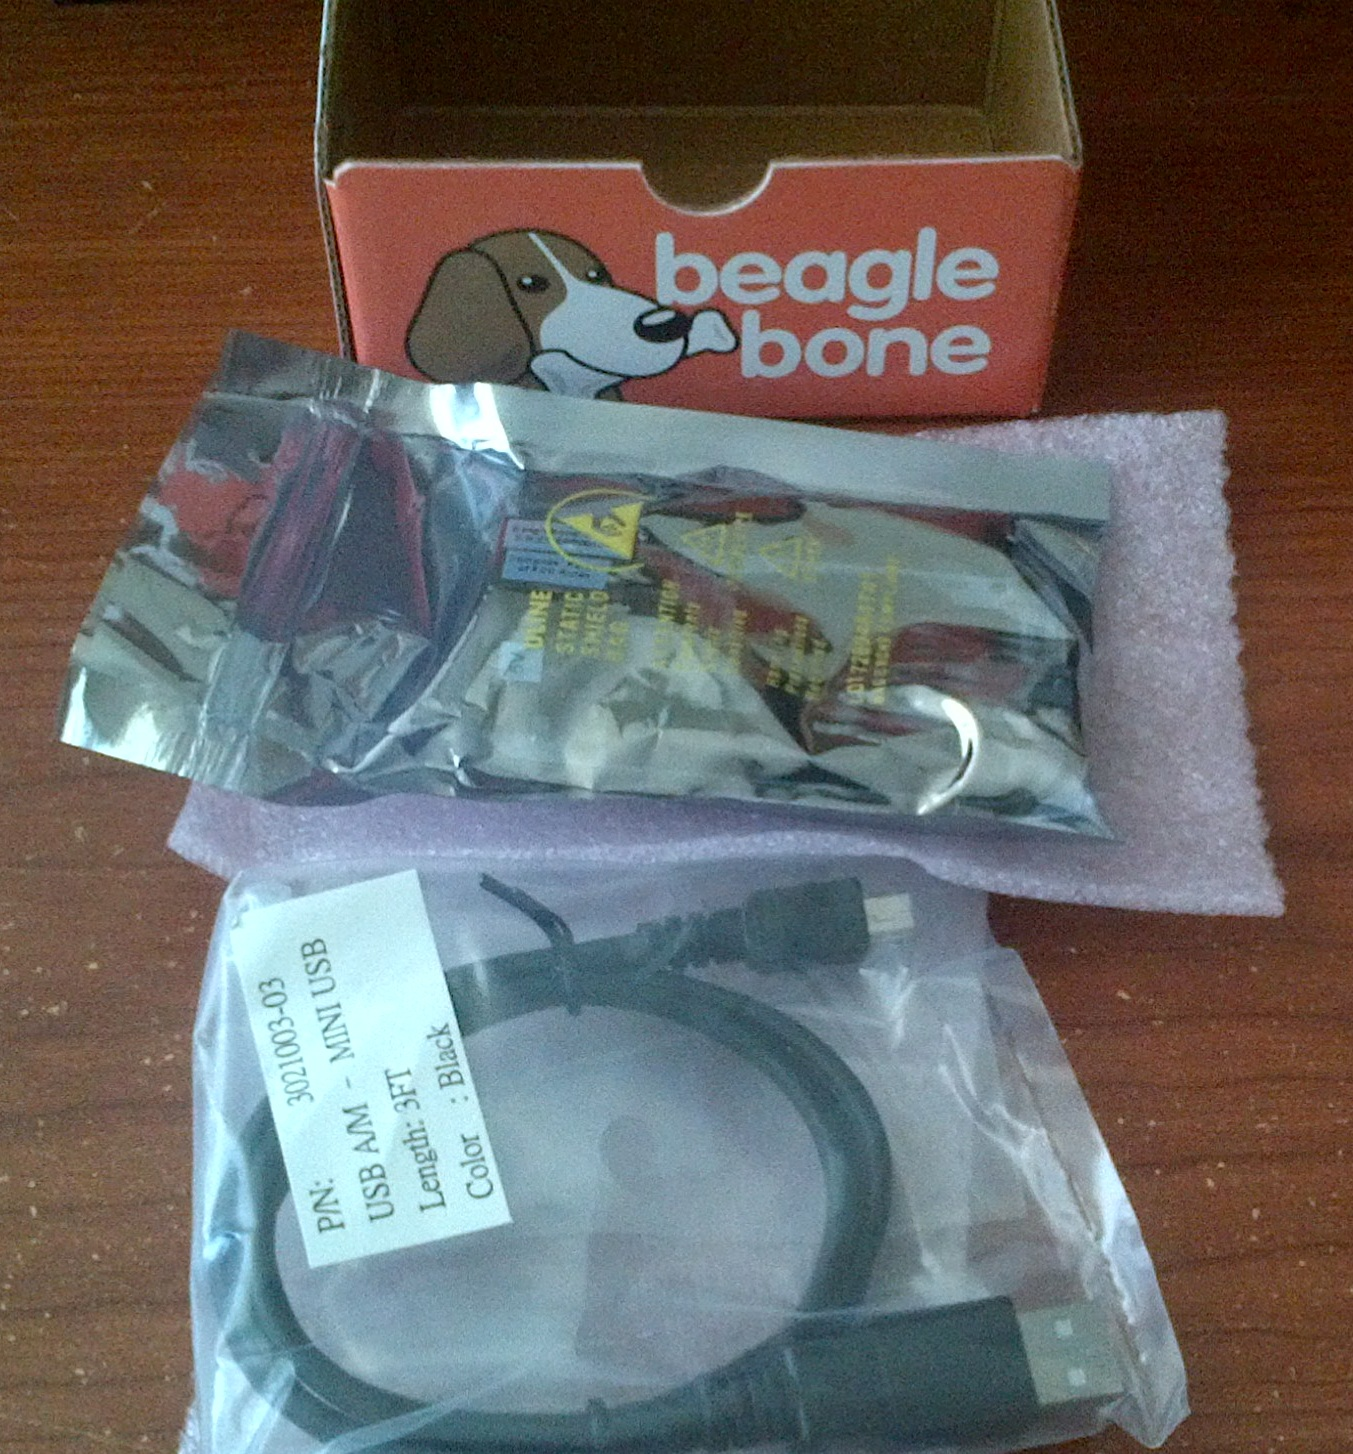 Step by Step (Video and Pix): BeagleBone Rev A6 Unboxing and